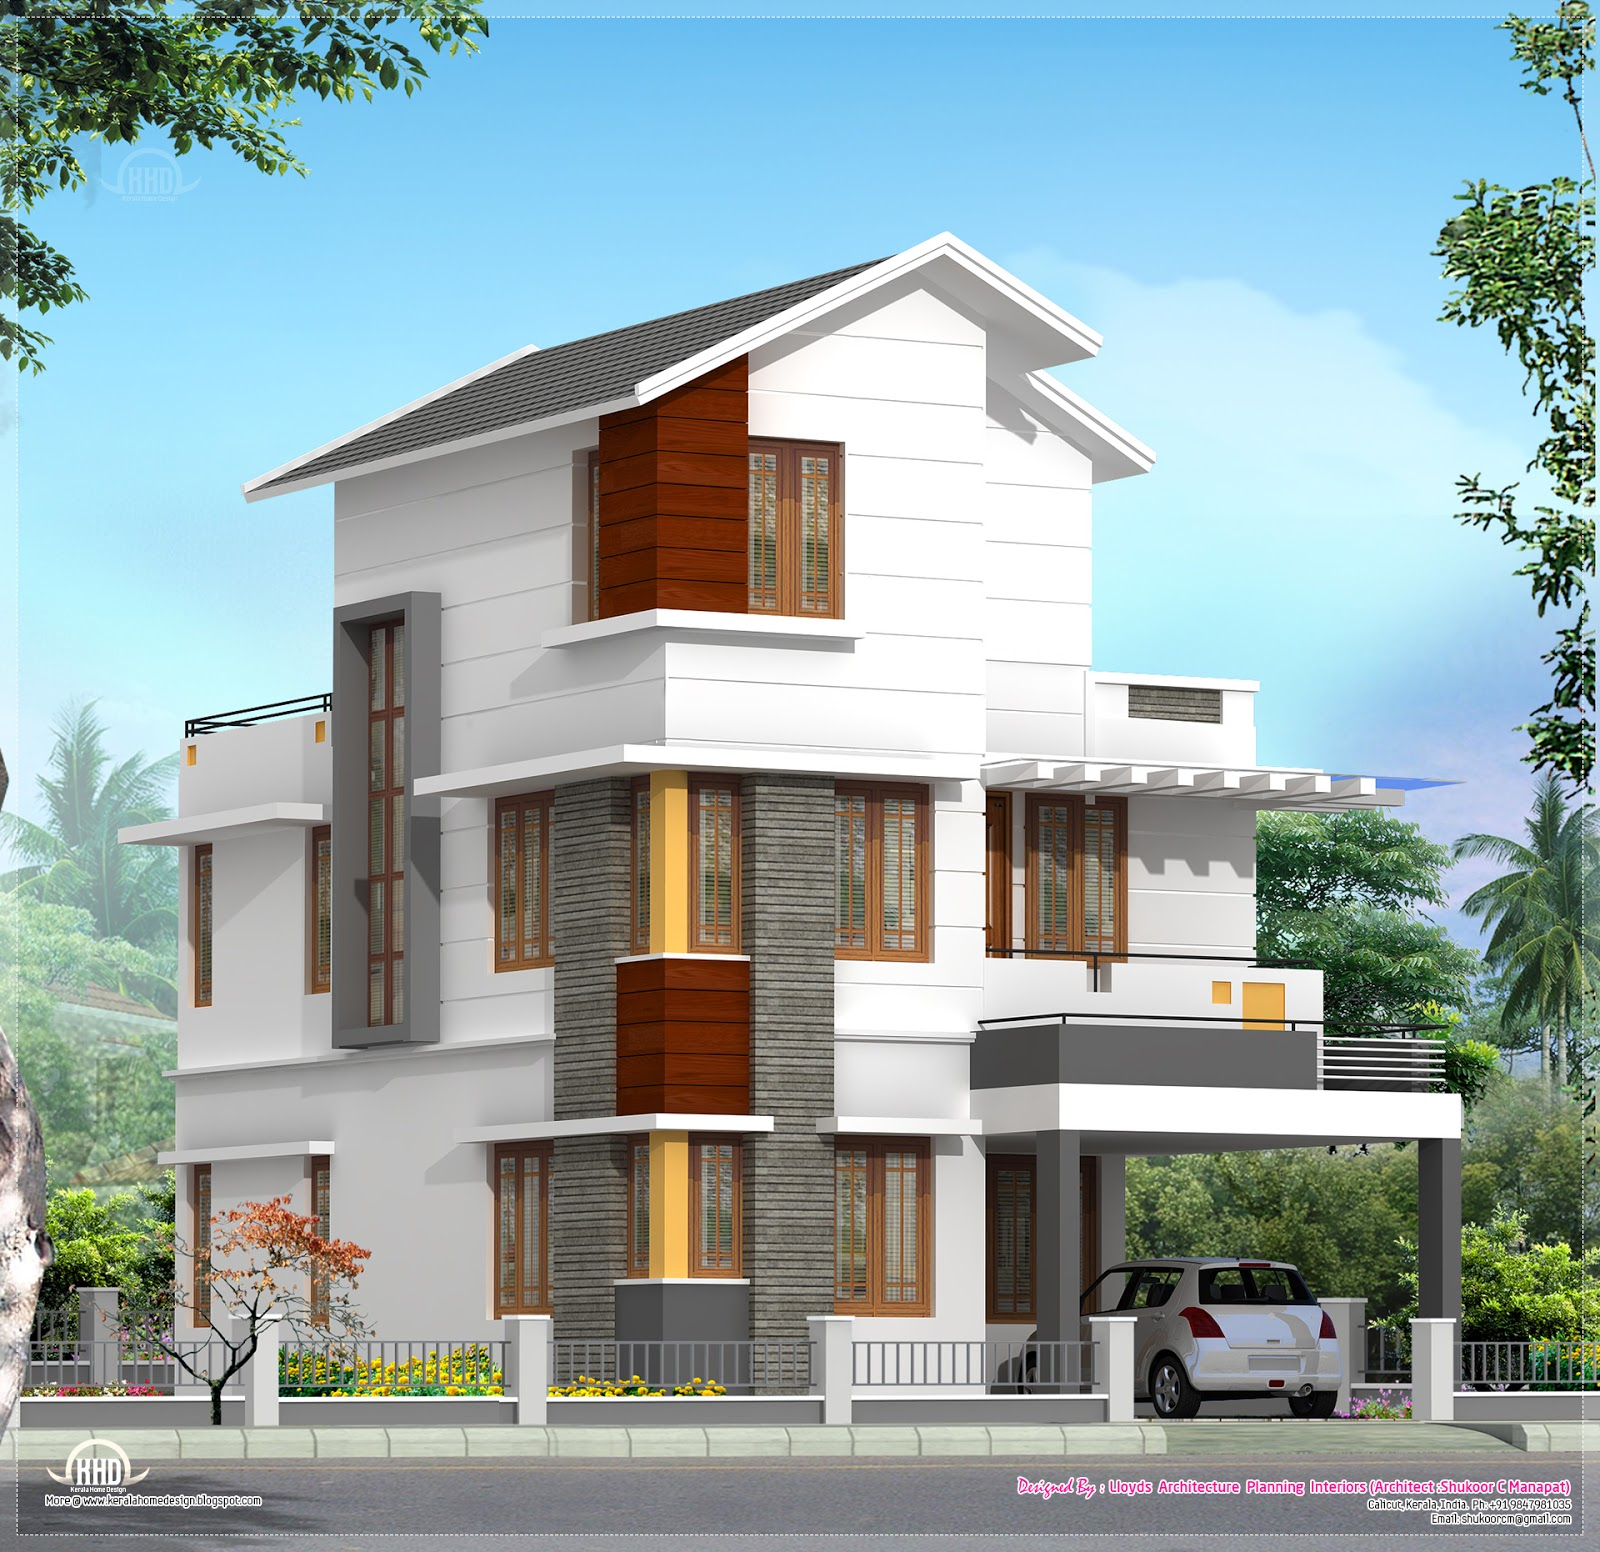 4 bedroom house plan in less that 3 cents home kerala plans - Gorgeous housessquare meters ...